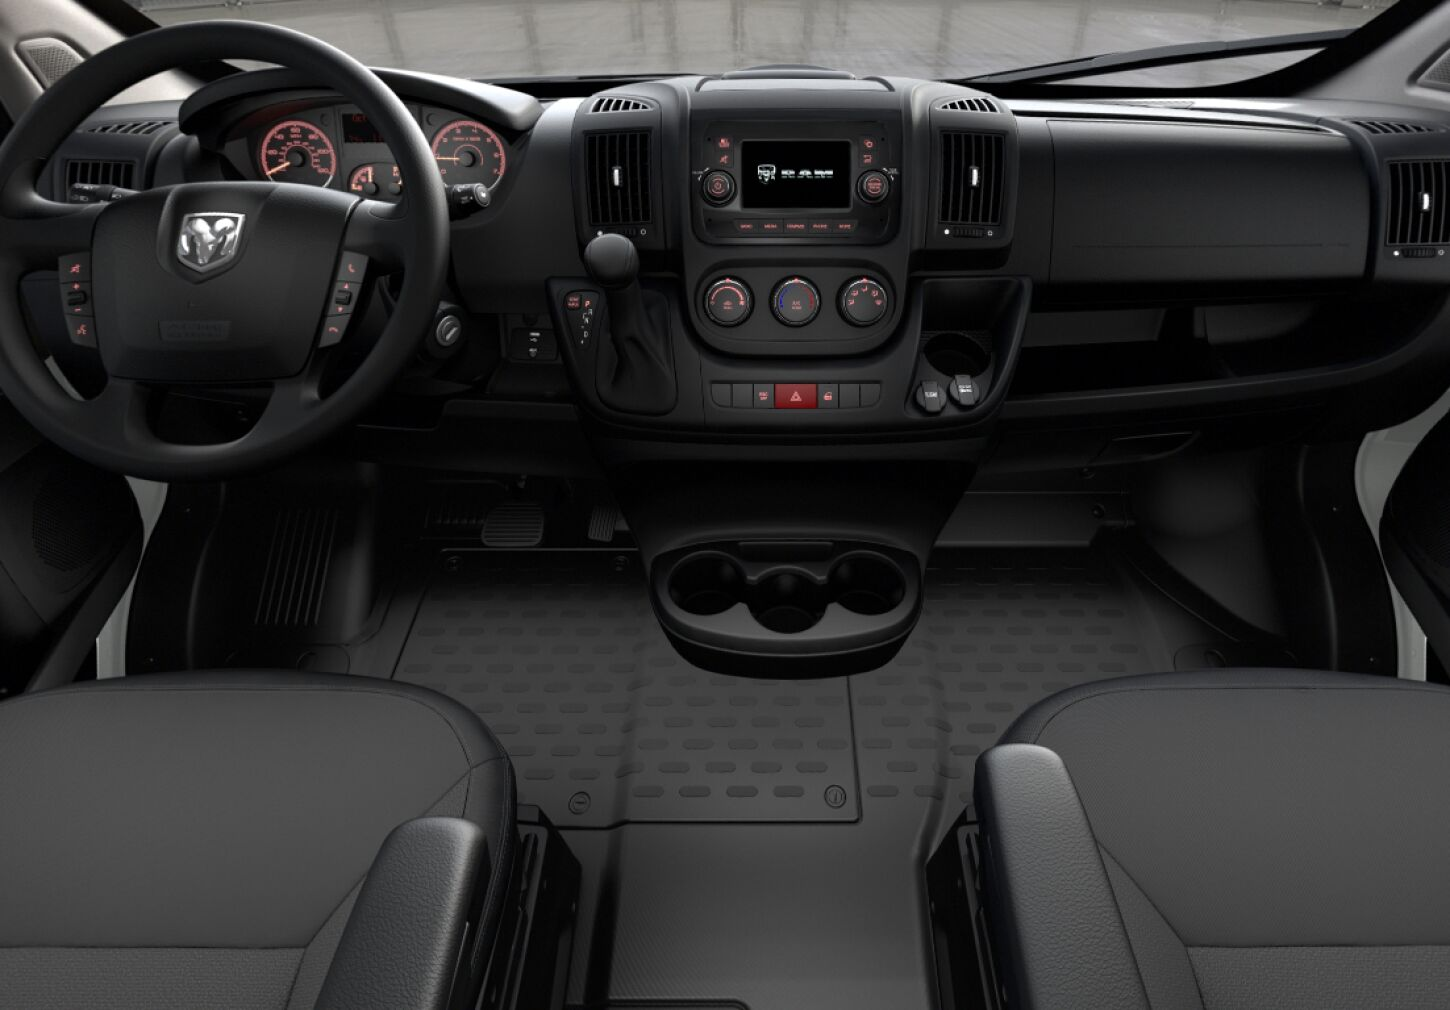 2019 Ram ProMaster Cargo Van High Roof Front Interior Dash Picture